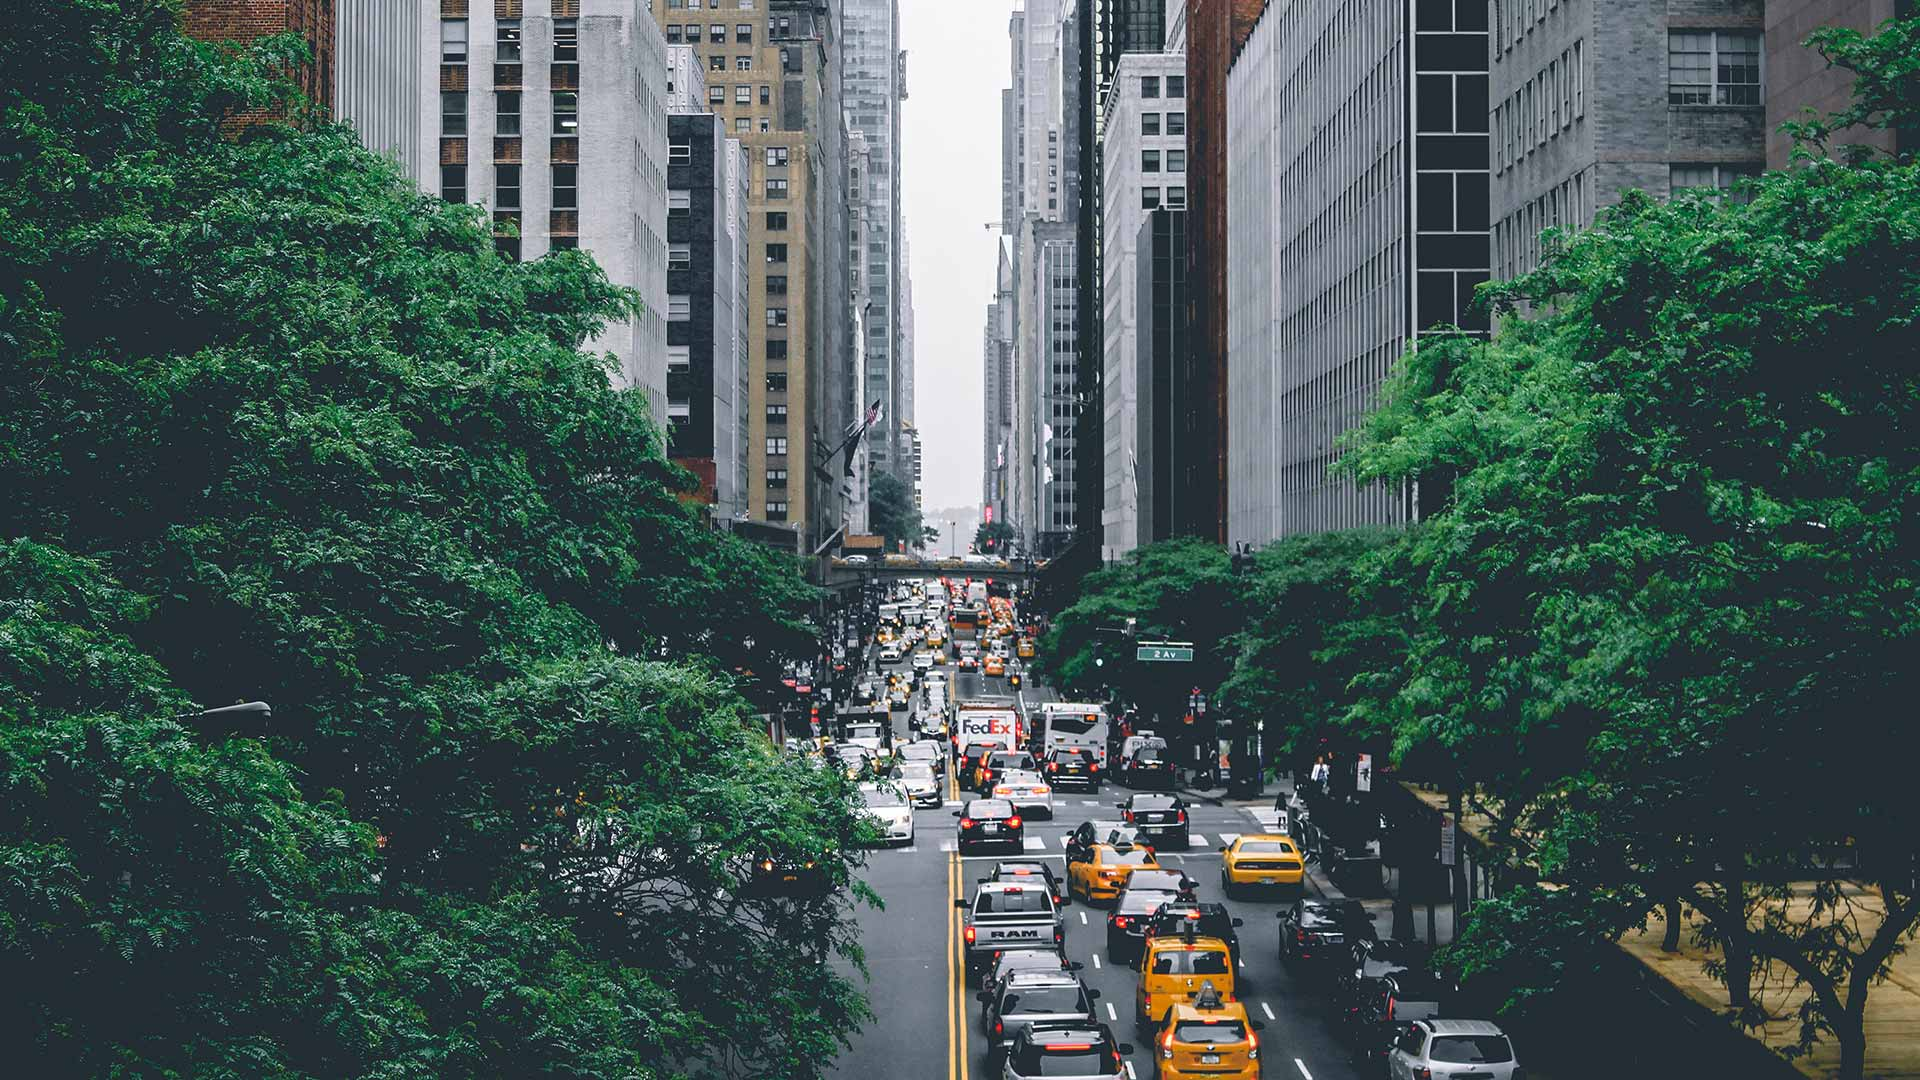 New York City in the Summer